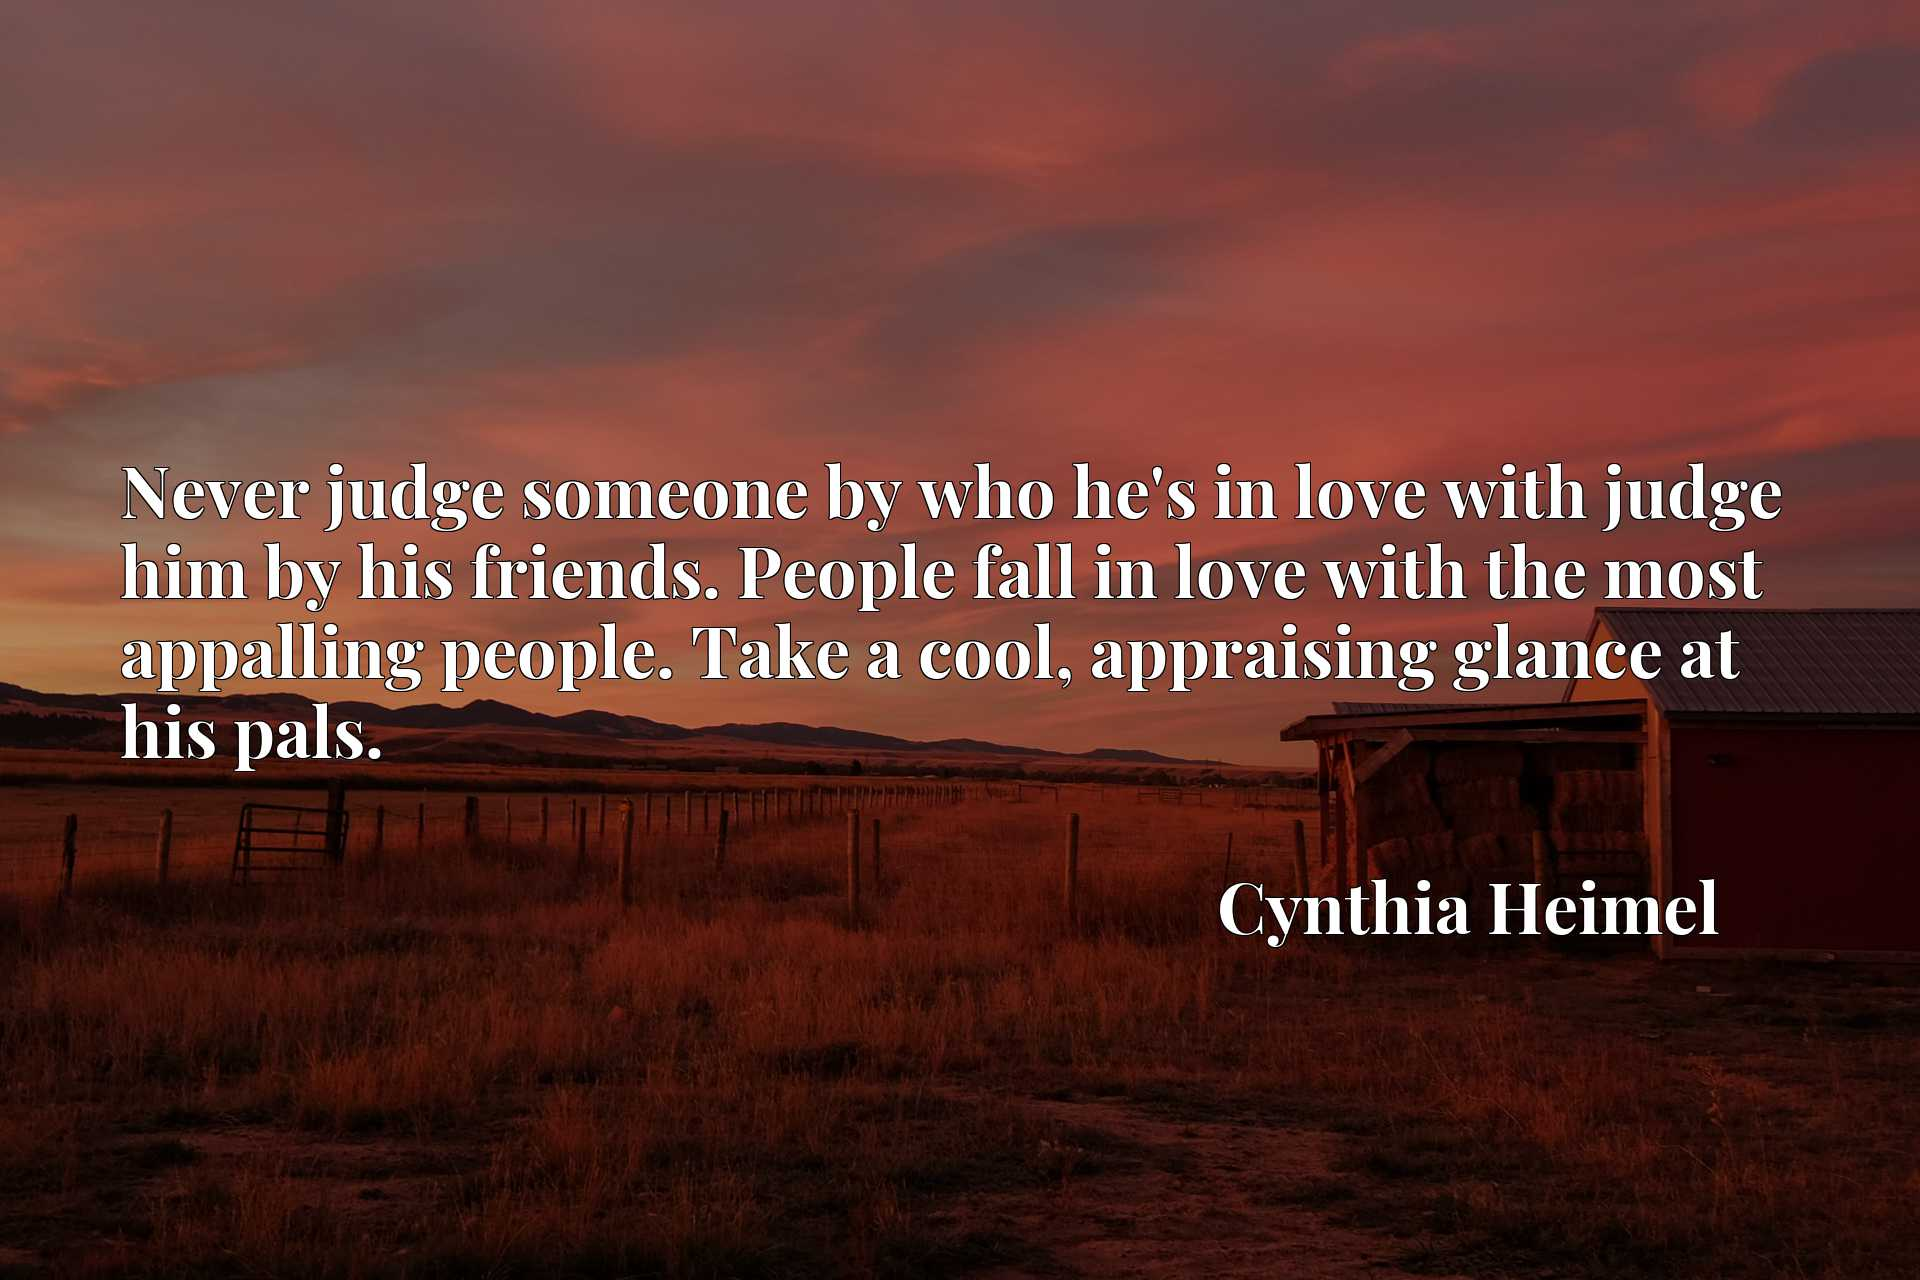 Never judge someone by who he's in love with judge him by his friends. People fall in love with the most appalling people. Take a cool, appraising glance at his pals.